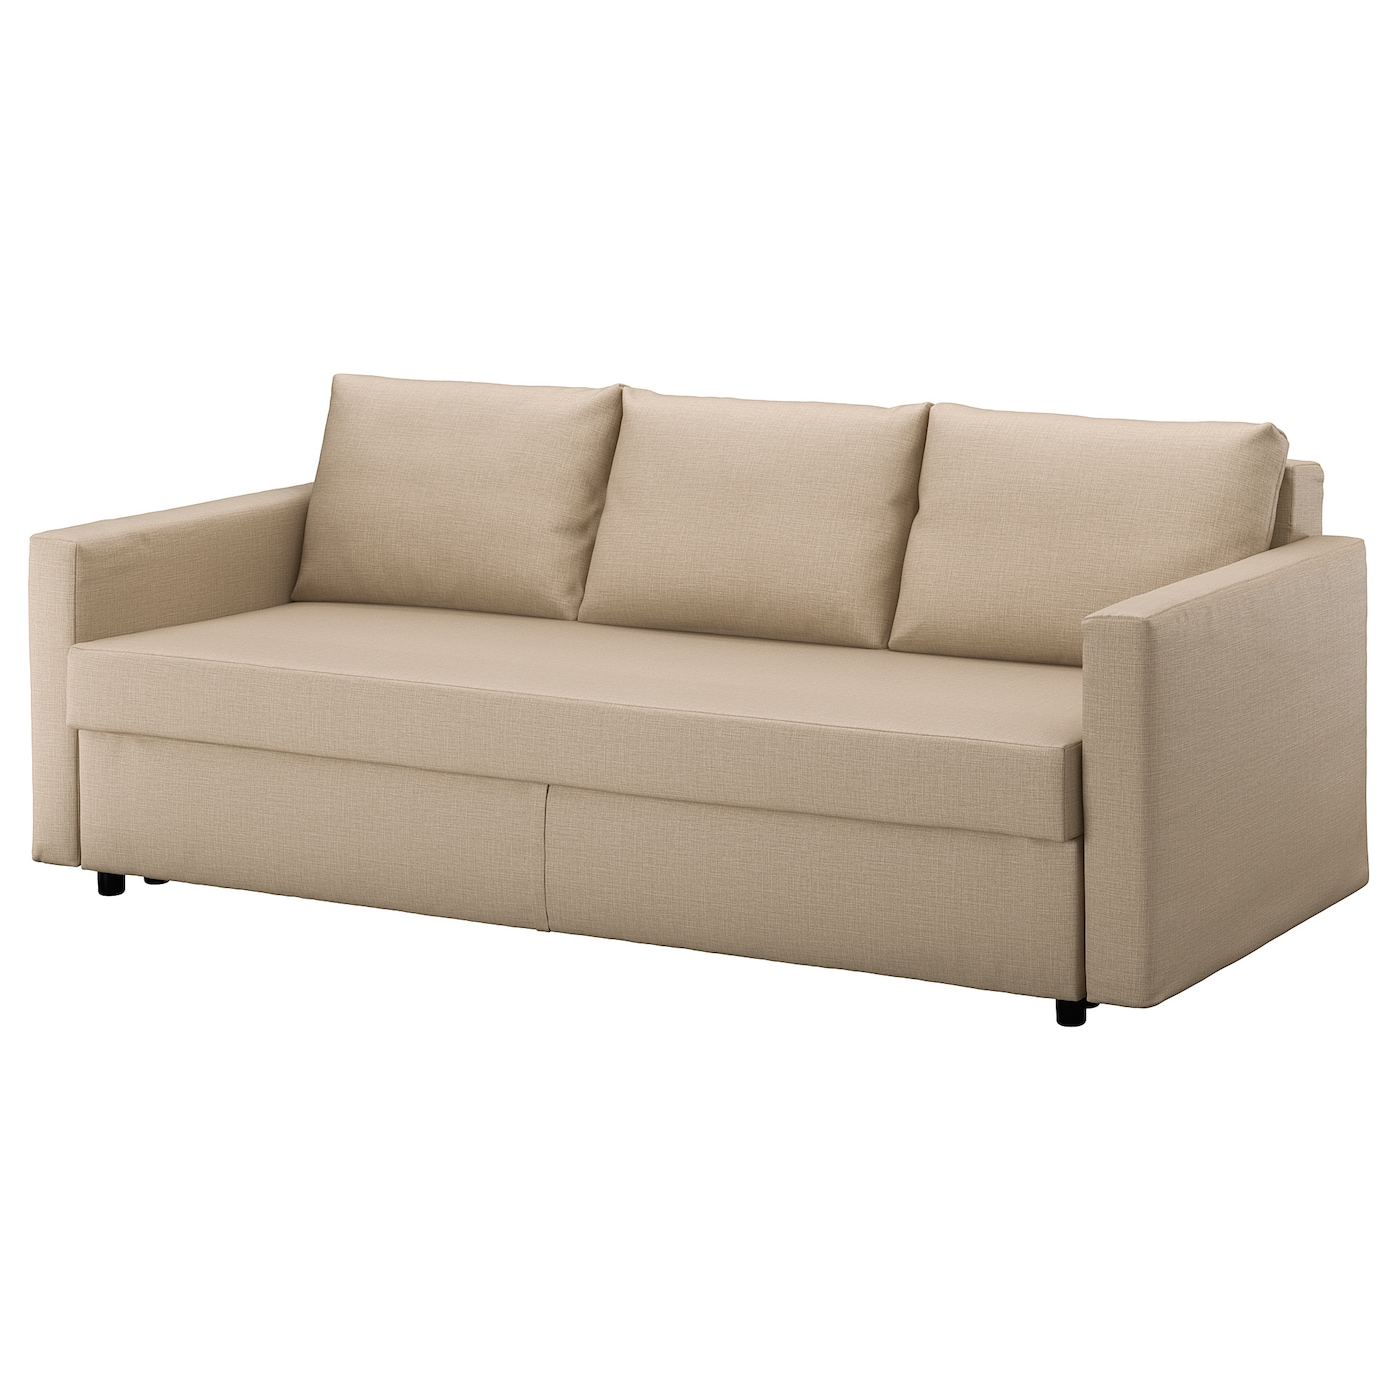 Friheten three seat sofa bed skiftebo beige ikea for Sofas de 4 plazas baratos